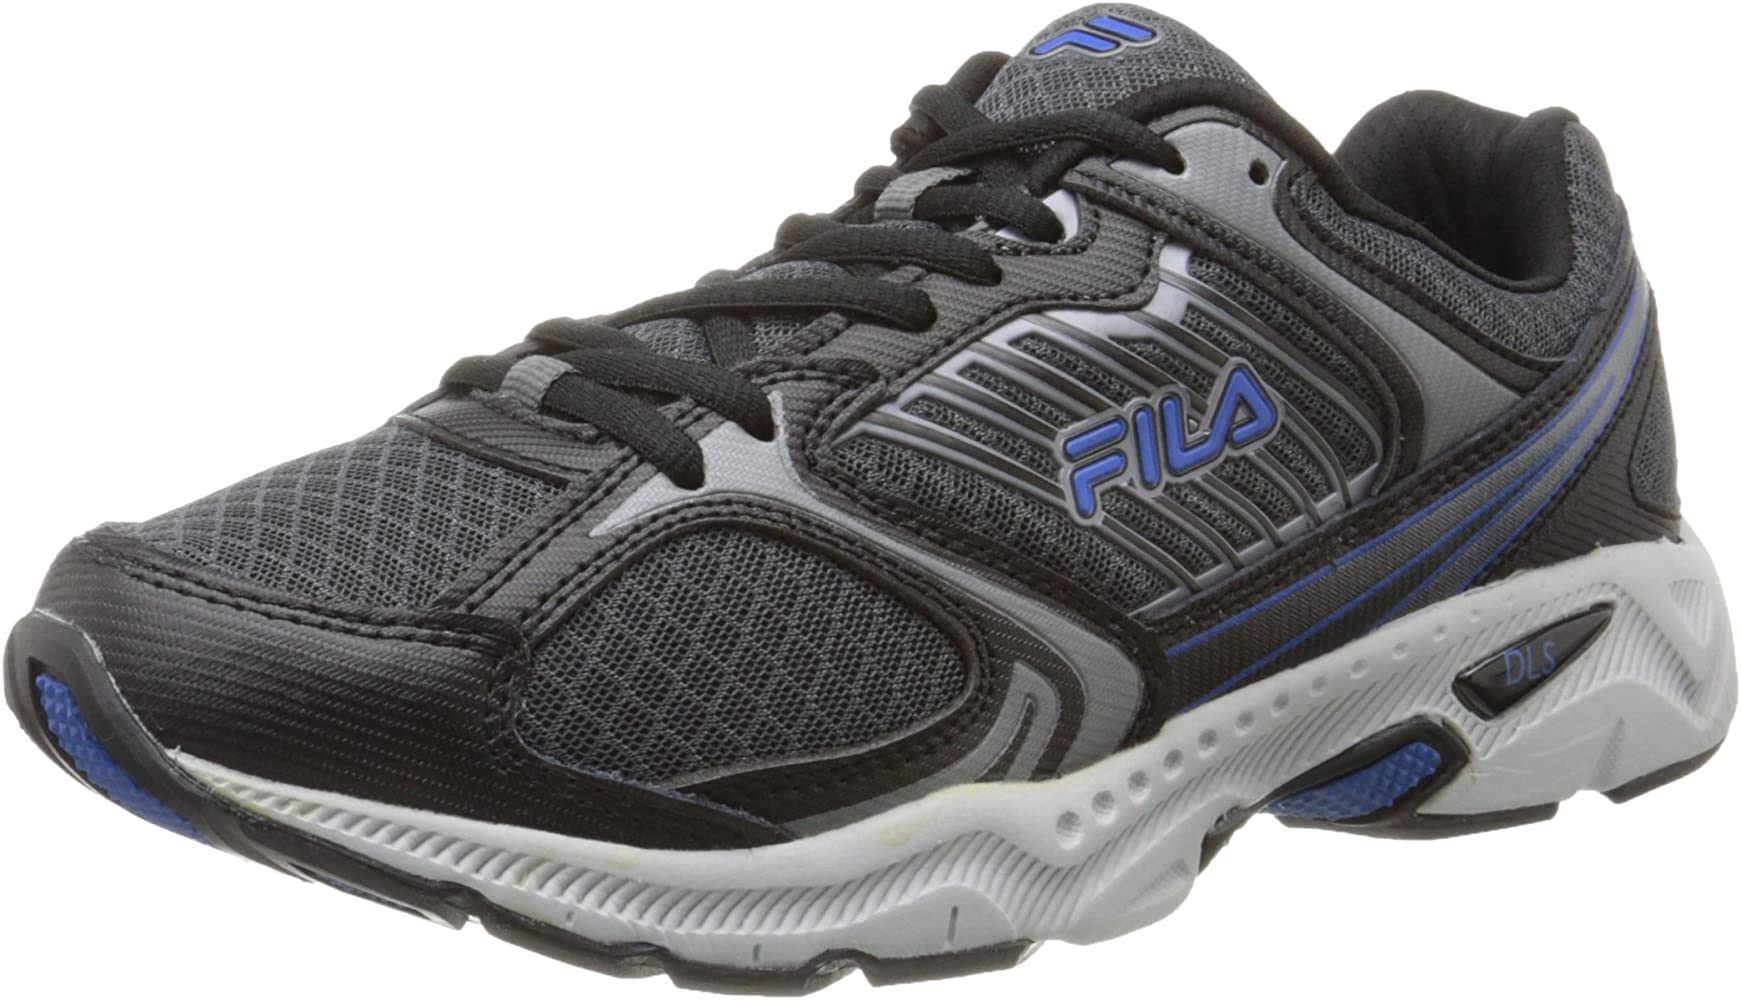 Fila 2 Interestelar Las Zapatillas de Running: Amazon.es: Zapatos ...